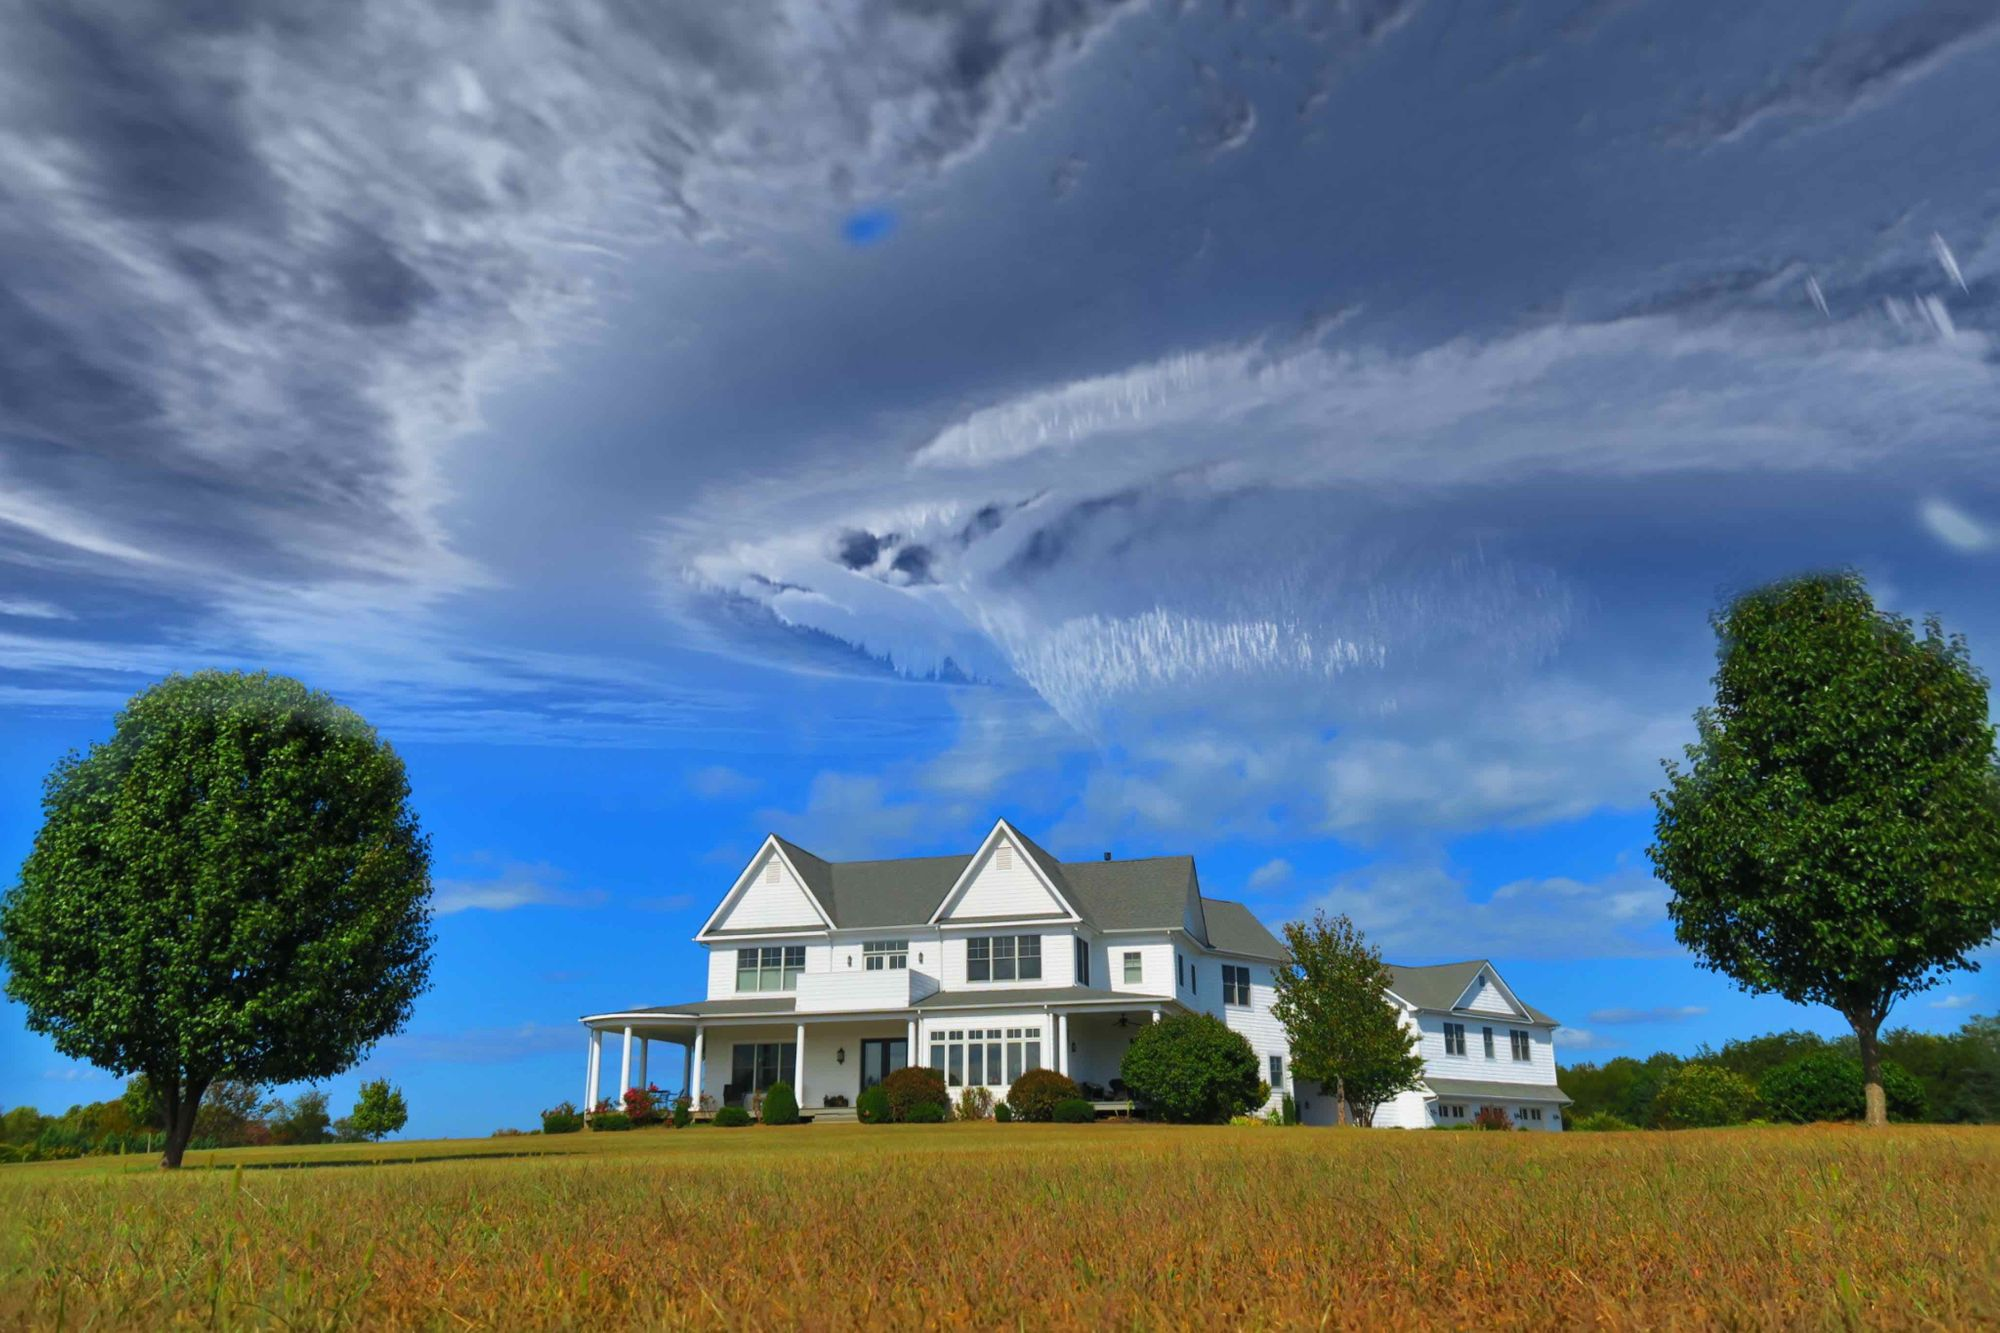 ScienceBrief on Cyclones